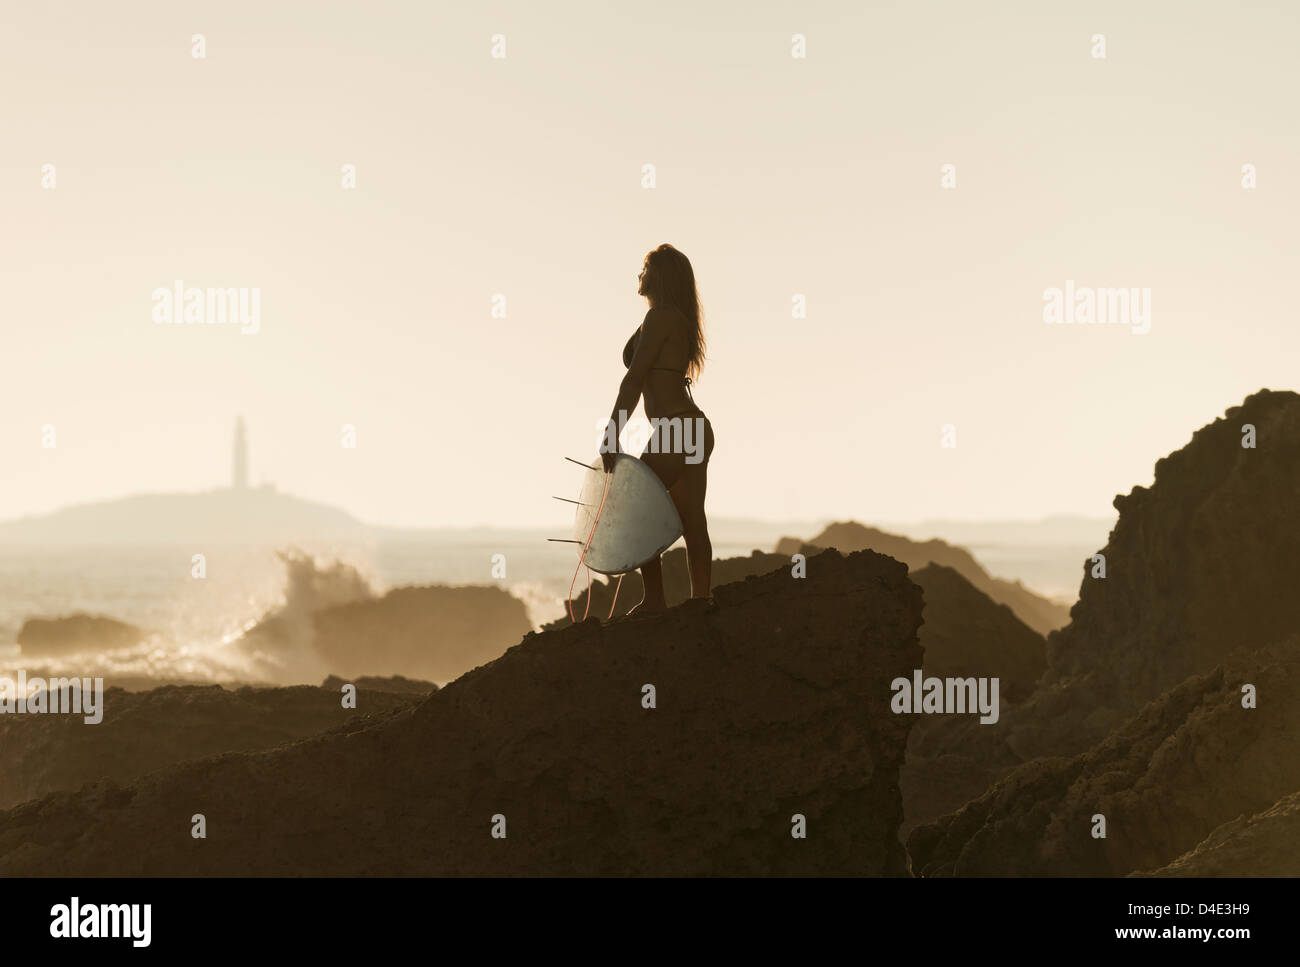 Silhouette of a female surfer holding her surfboard while standing on a rock at the coast; andalusia spain - Stock Image